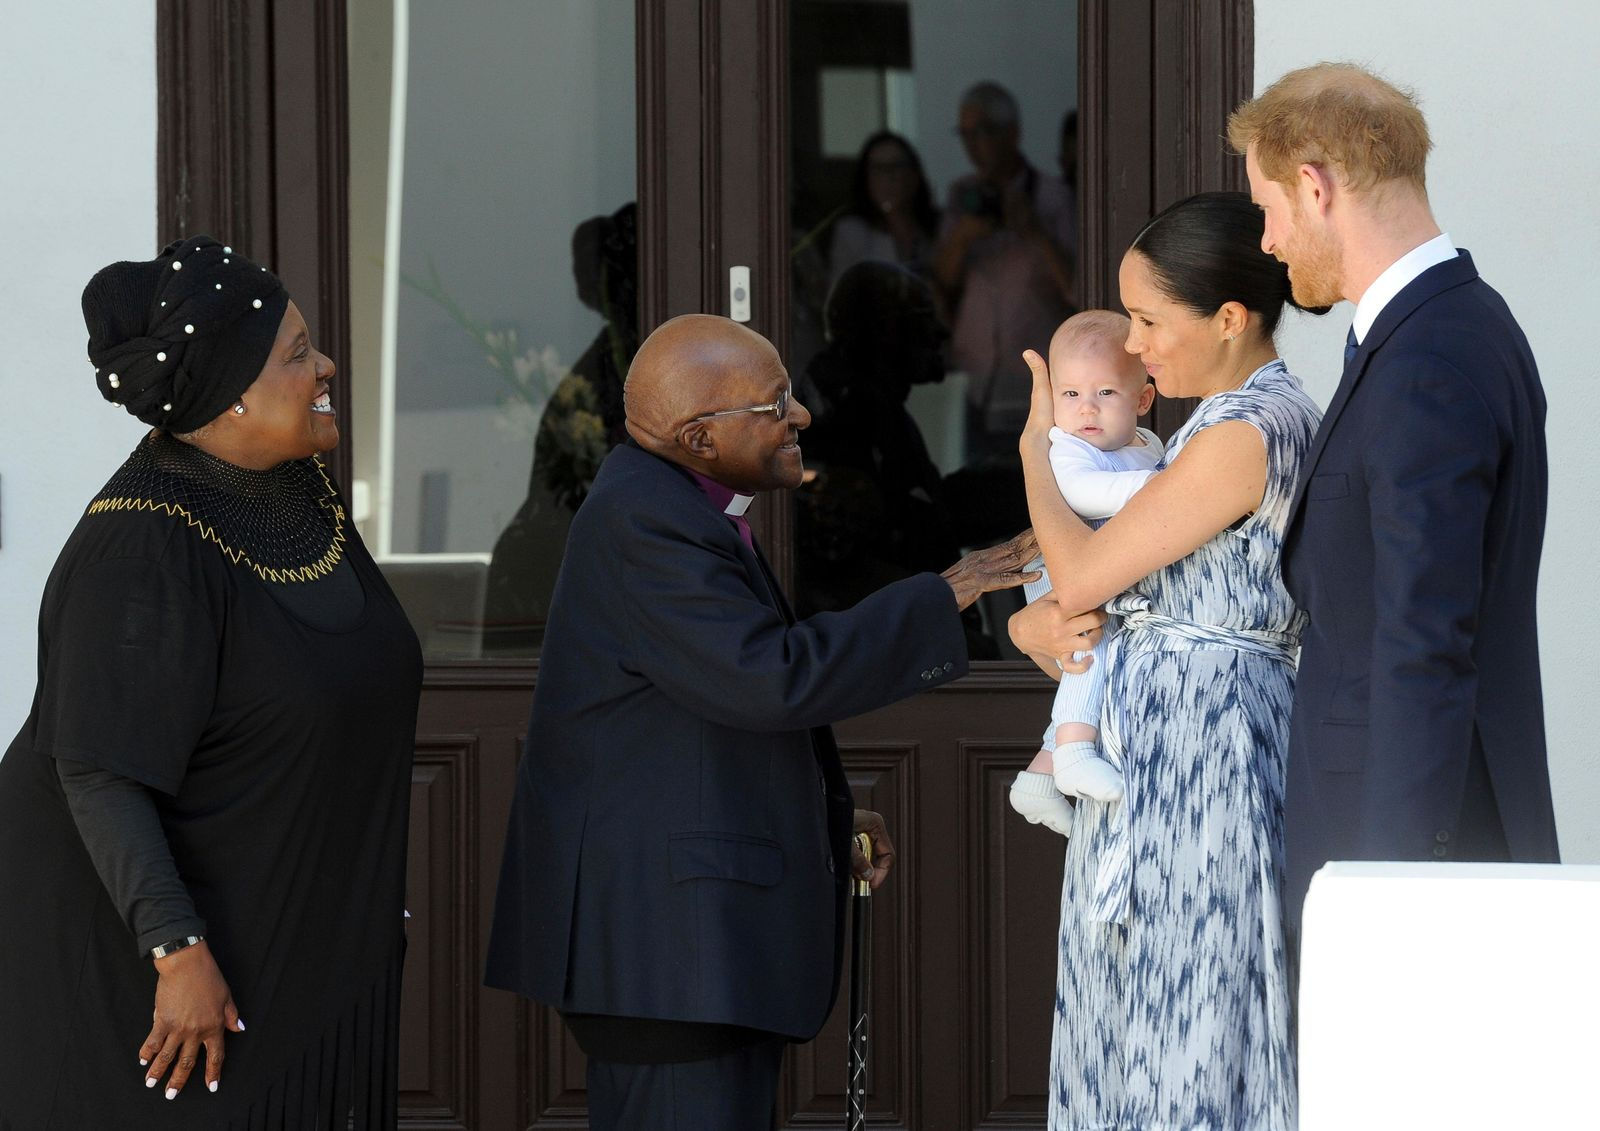 FILE - In this Wednesday, Sept. 25, 2019 file photo, Britain's Prince Harry and Meghan, Duchess of Sussex, holding their son Archie, meet Anglican Archbishop Emeritus, Desmond Tutu and his wife Leah in Cape Town, South Africa. (Henk Kruger/Pool via AP, File)